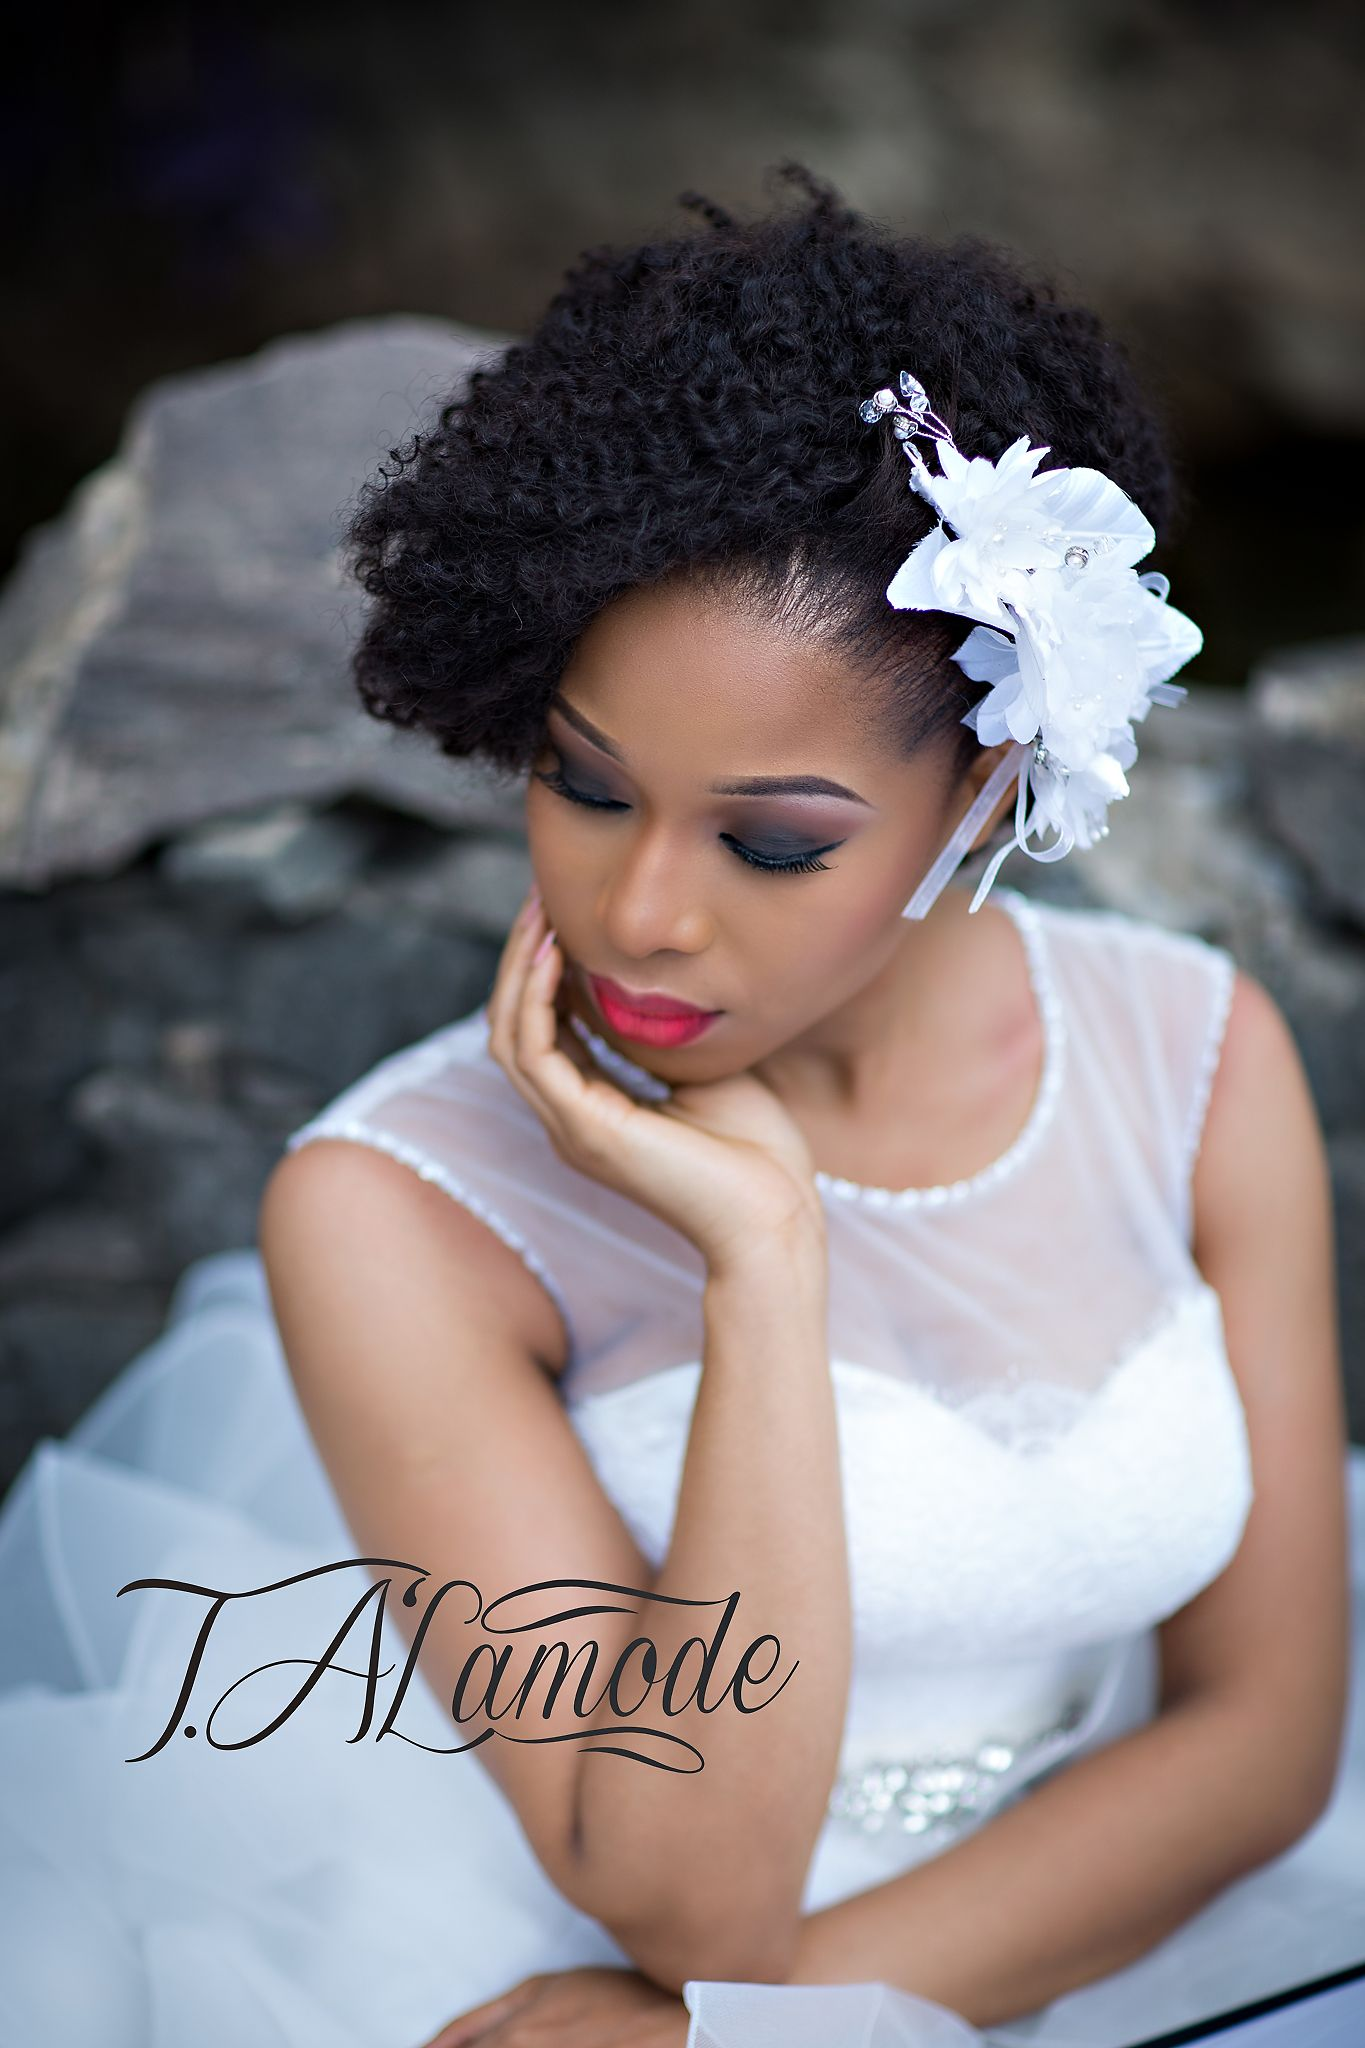 nigerian bridal natural hair and makeup shoot black. Black Bedroom Furniture Sets. Home Design Ideas